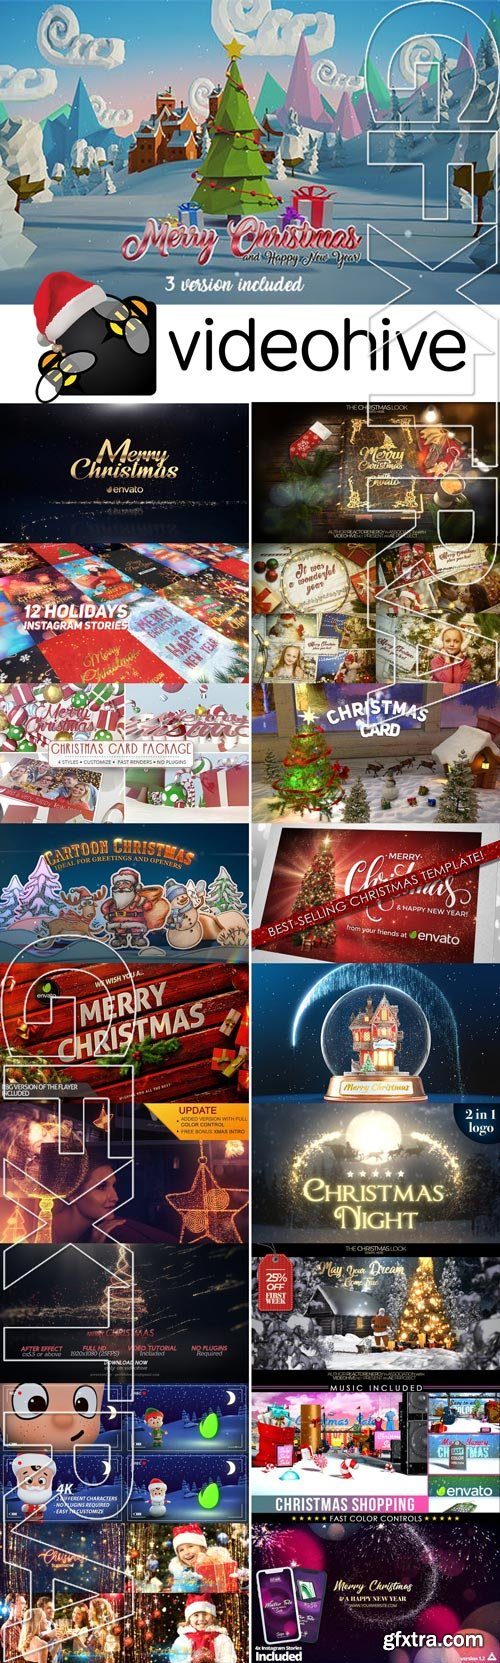 Videohive Christmas Big Pack